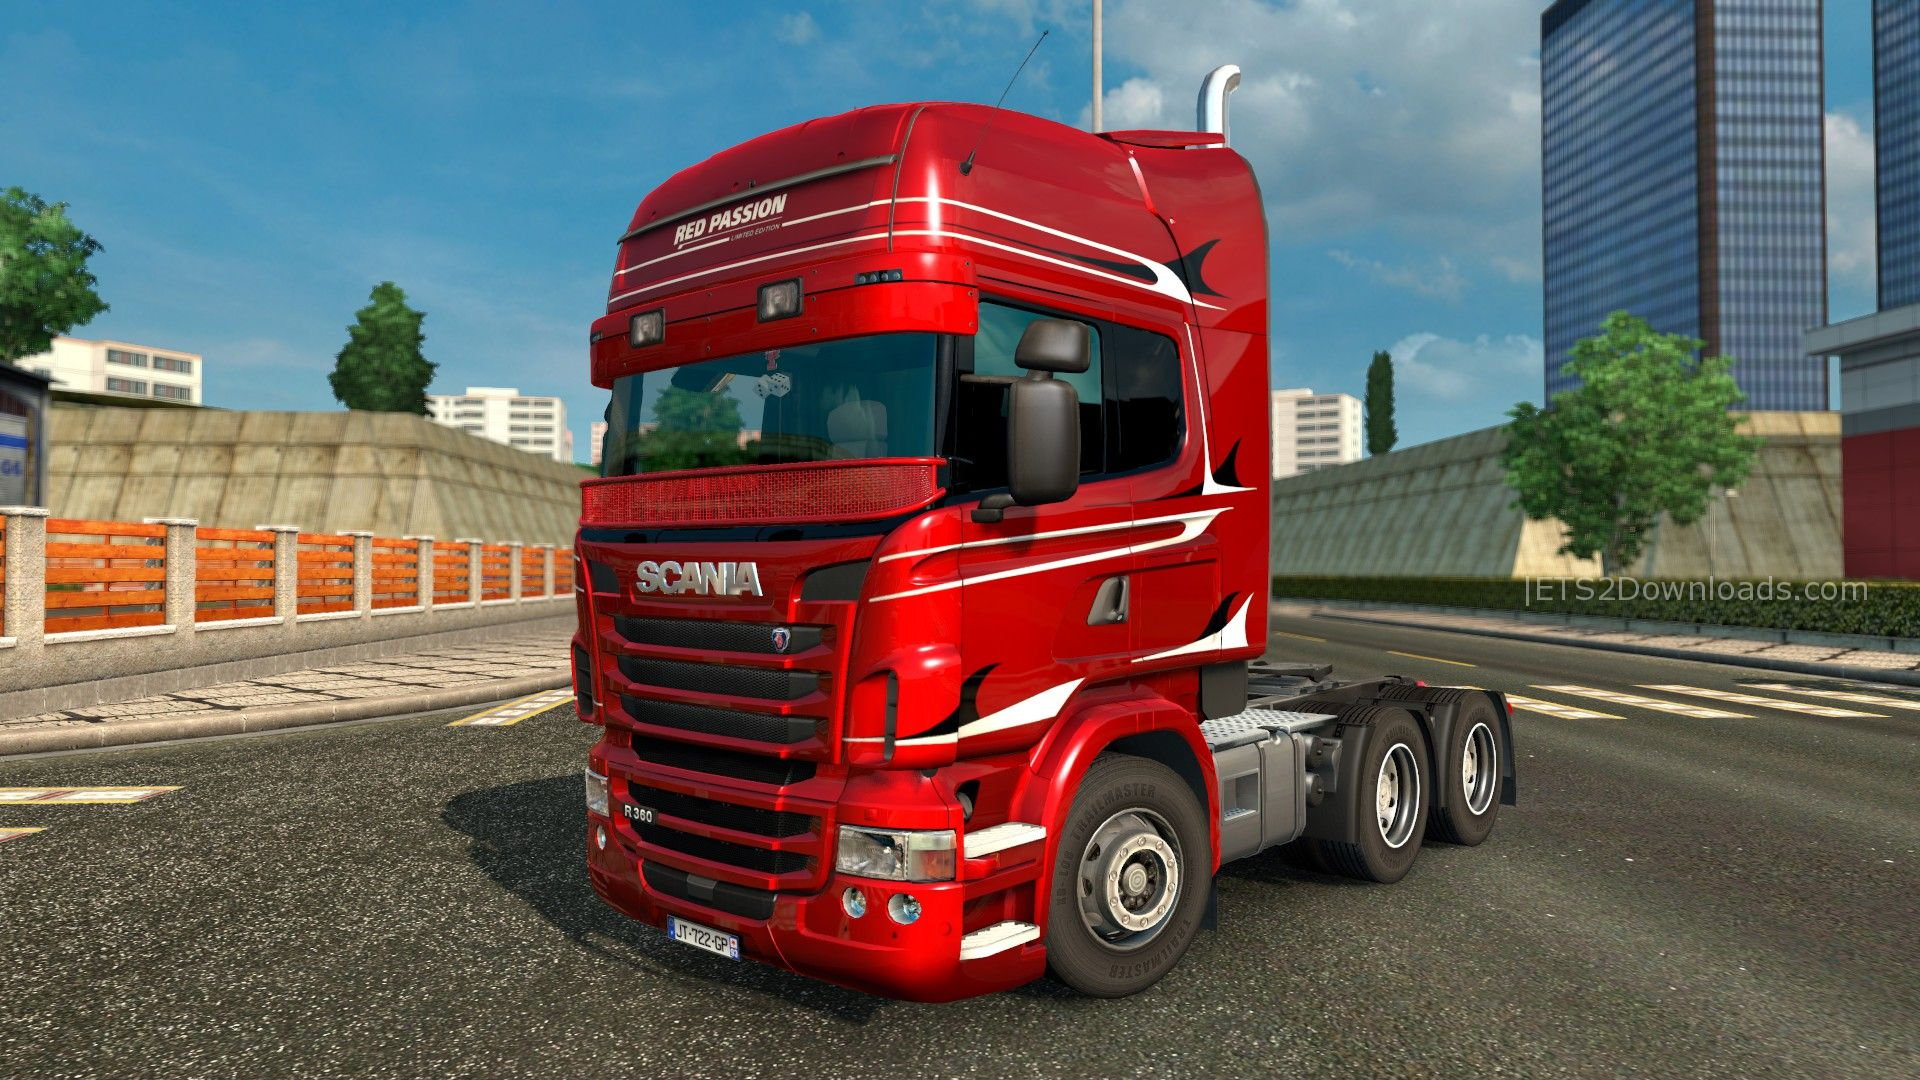 red-passion-skin-for-scania-rjl-1